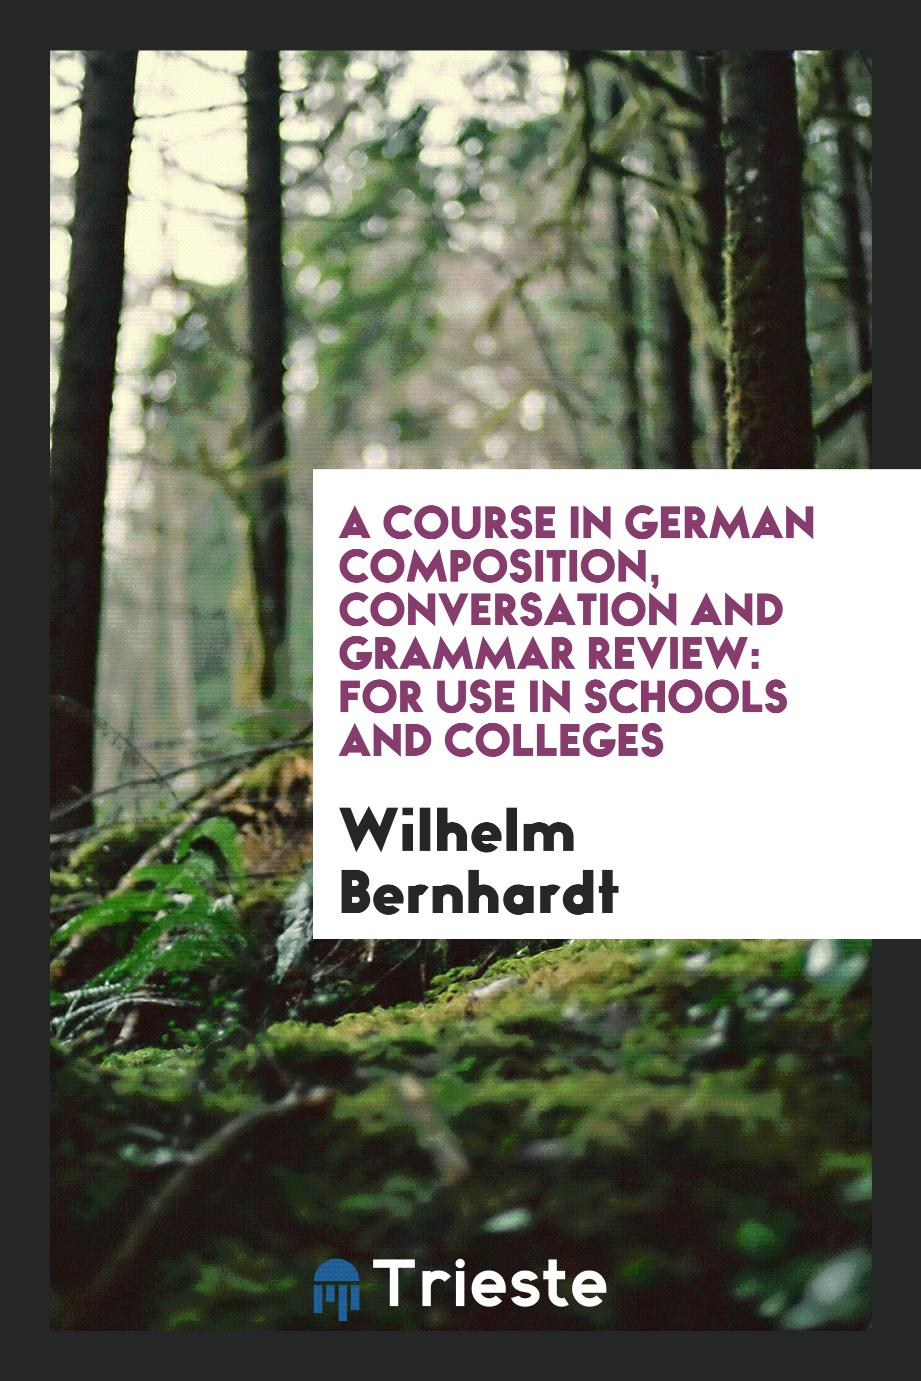 A Course in German Composition, Conversation and Grammar Review: For Use in Schools and Colleges